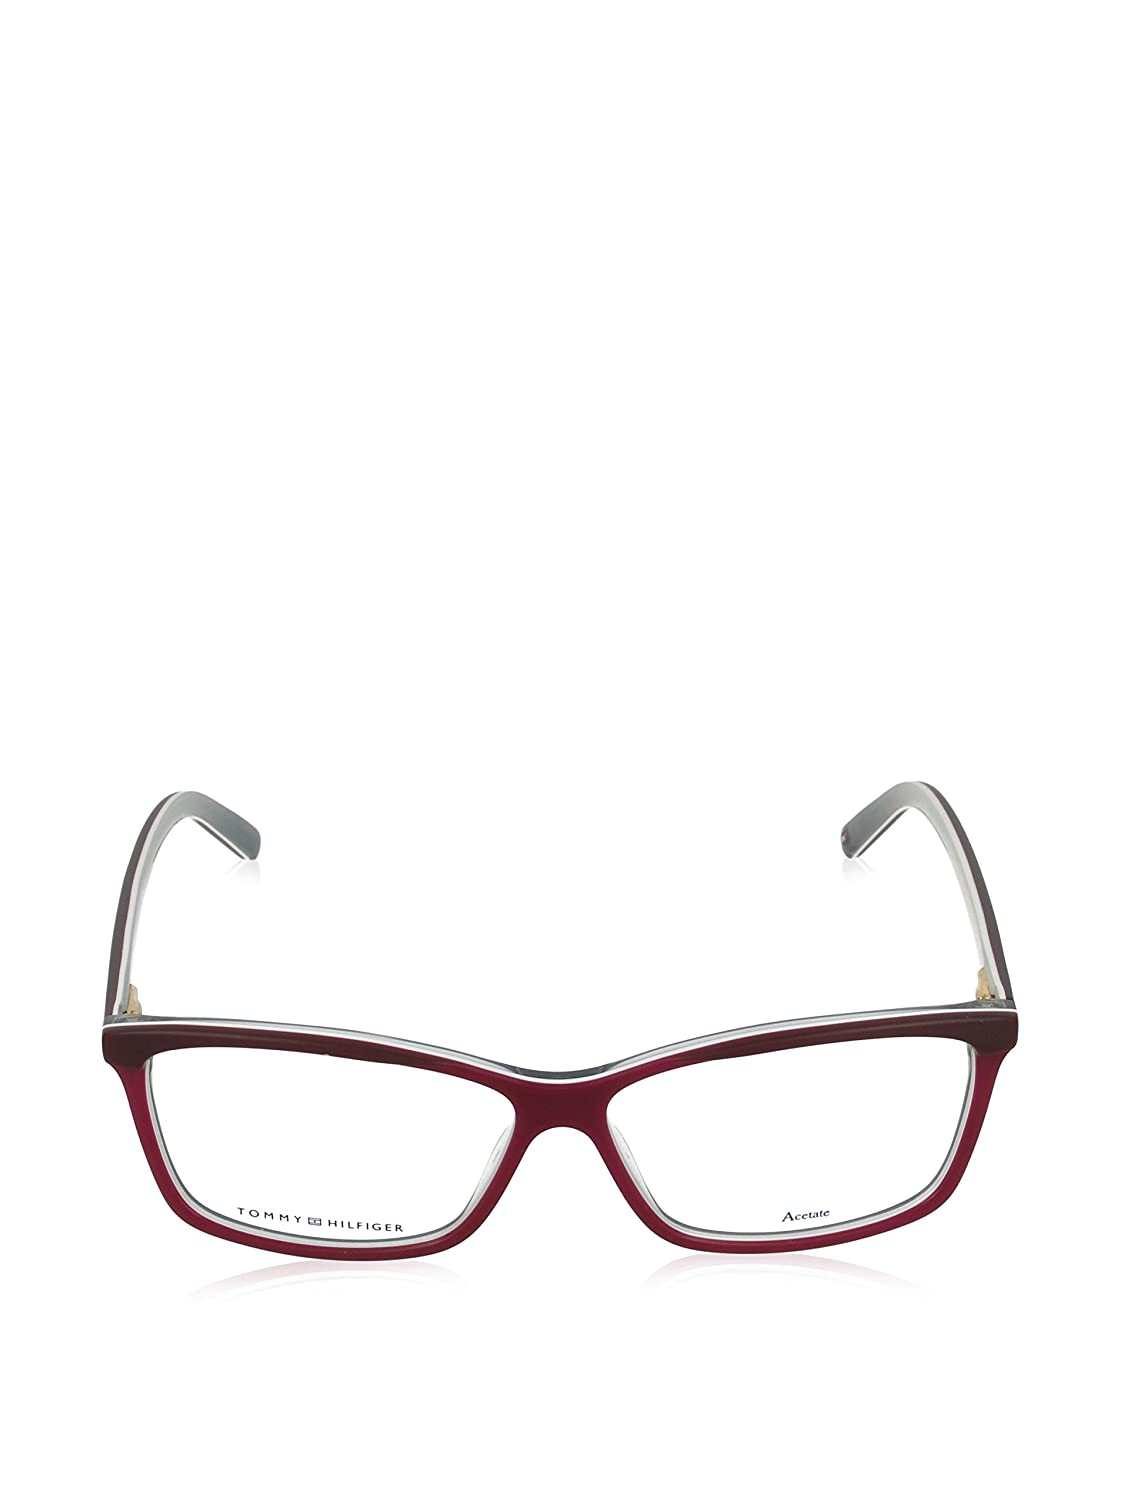 : Tommy Hilfiger TH 1123, Geometric, acetate